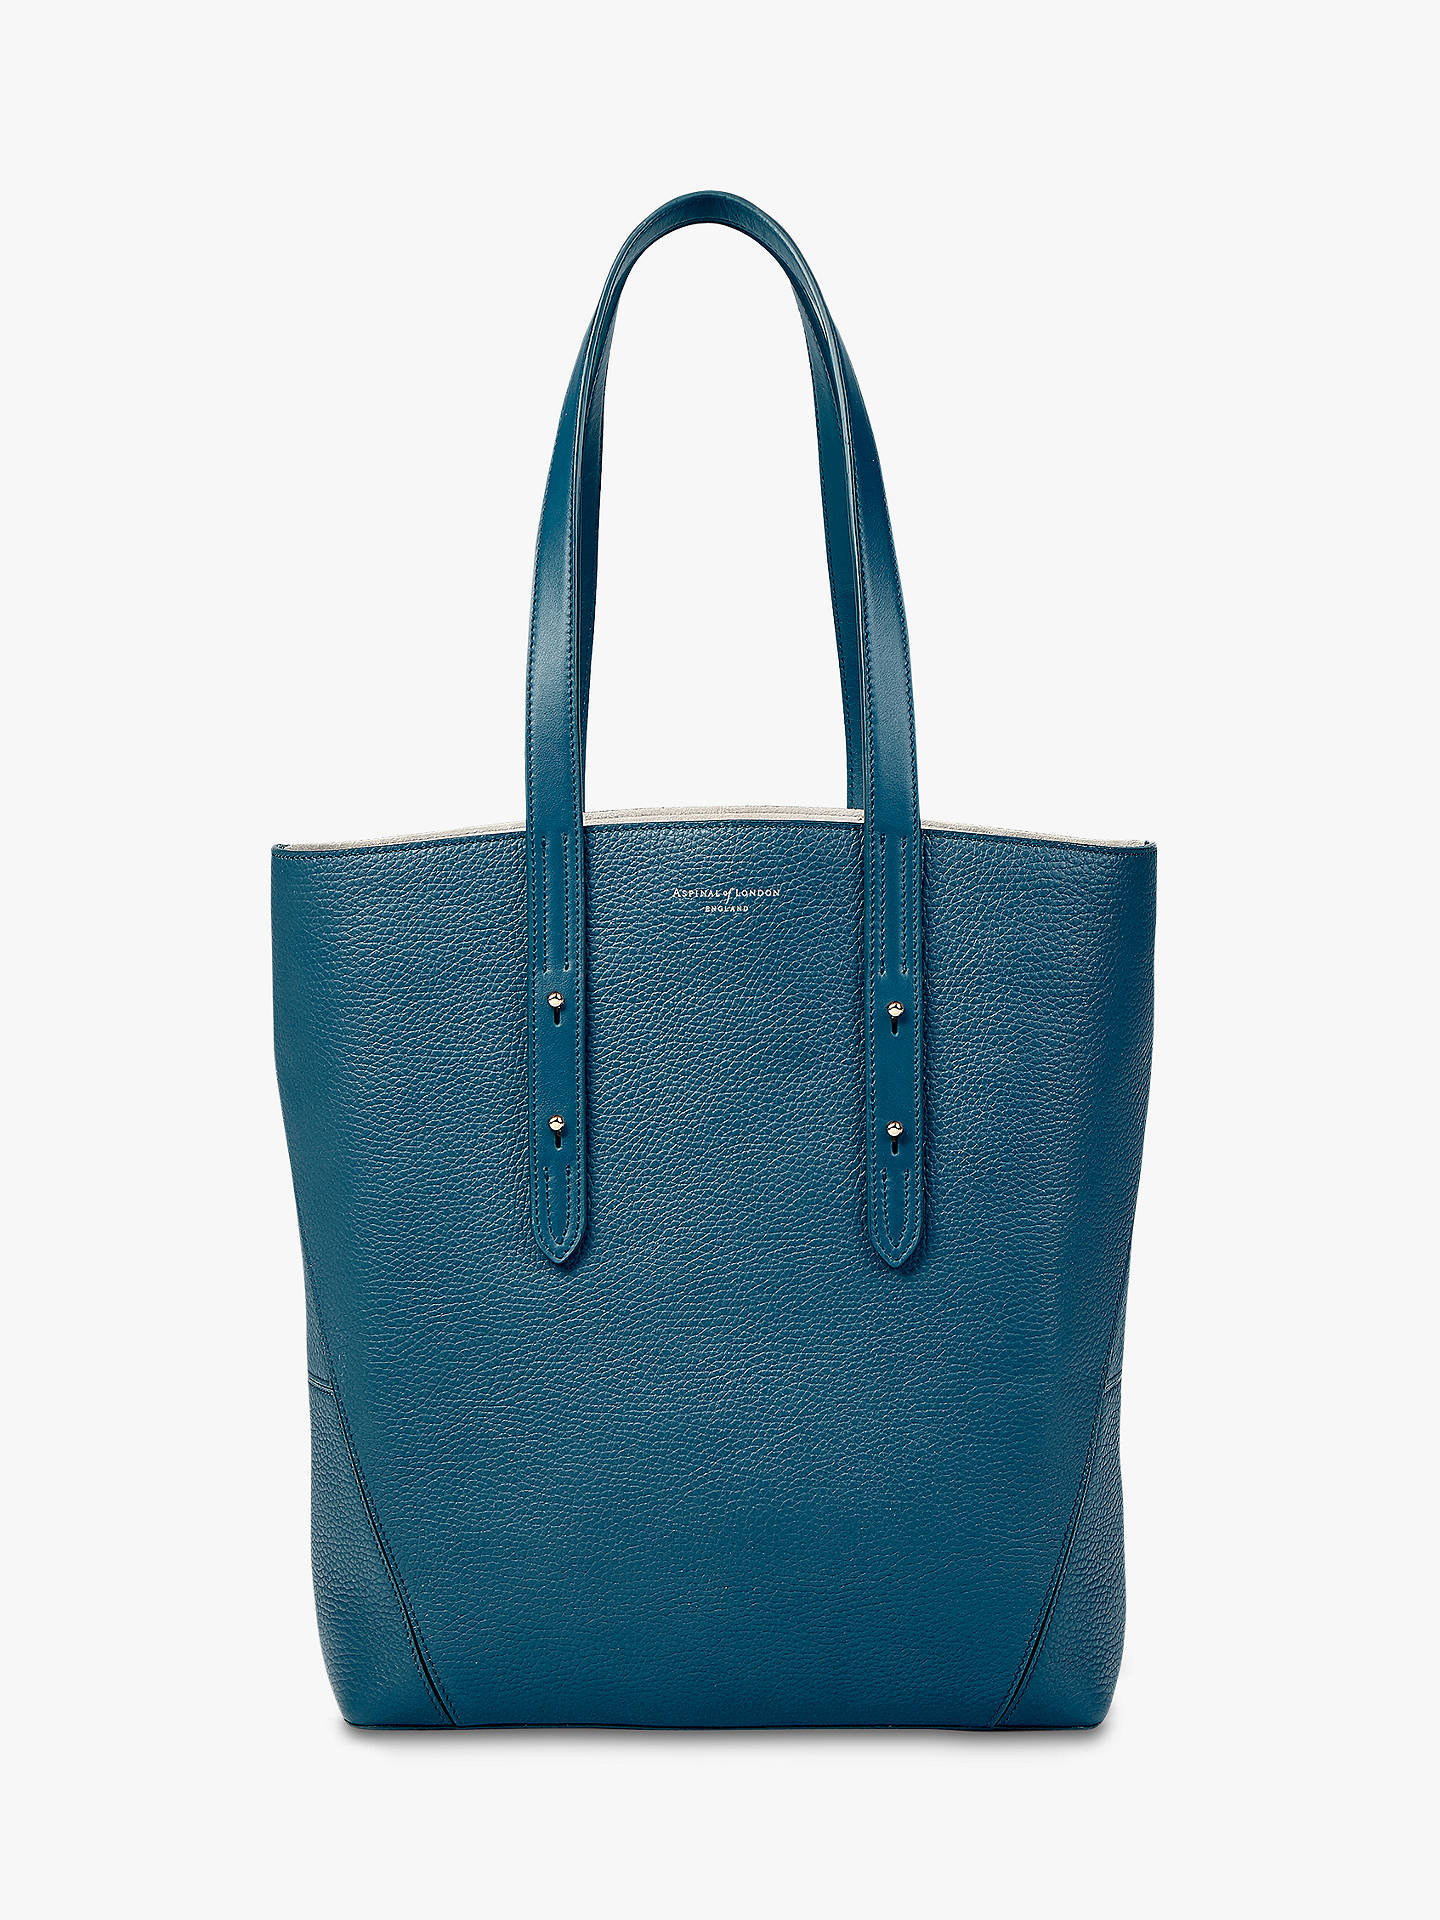 Aspinal Of London Essential Small Leather Tote Bag Topaz Online At Johnlewis